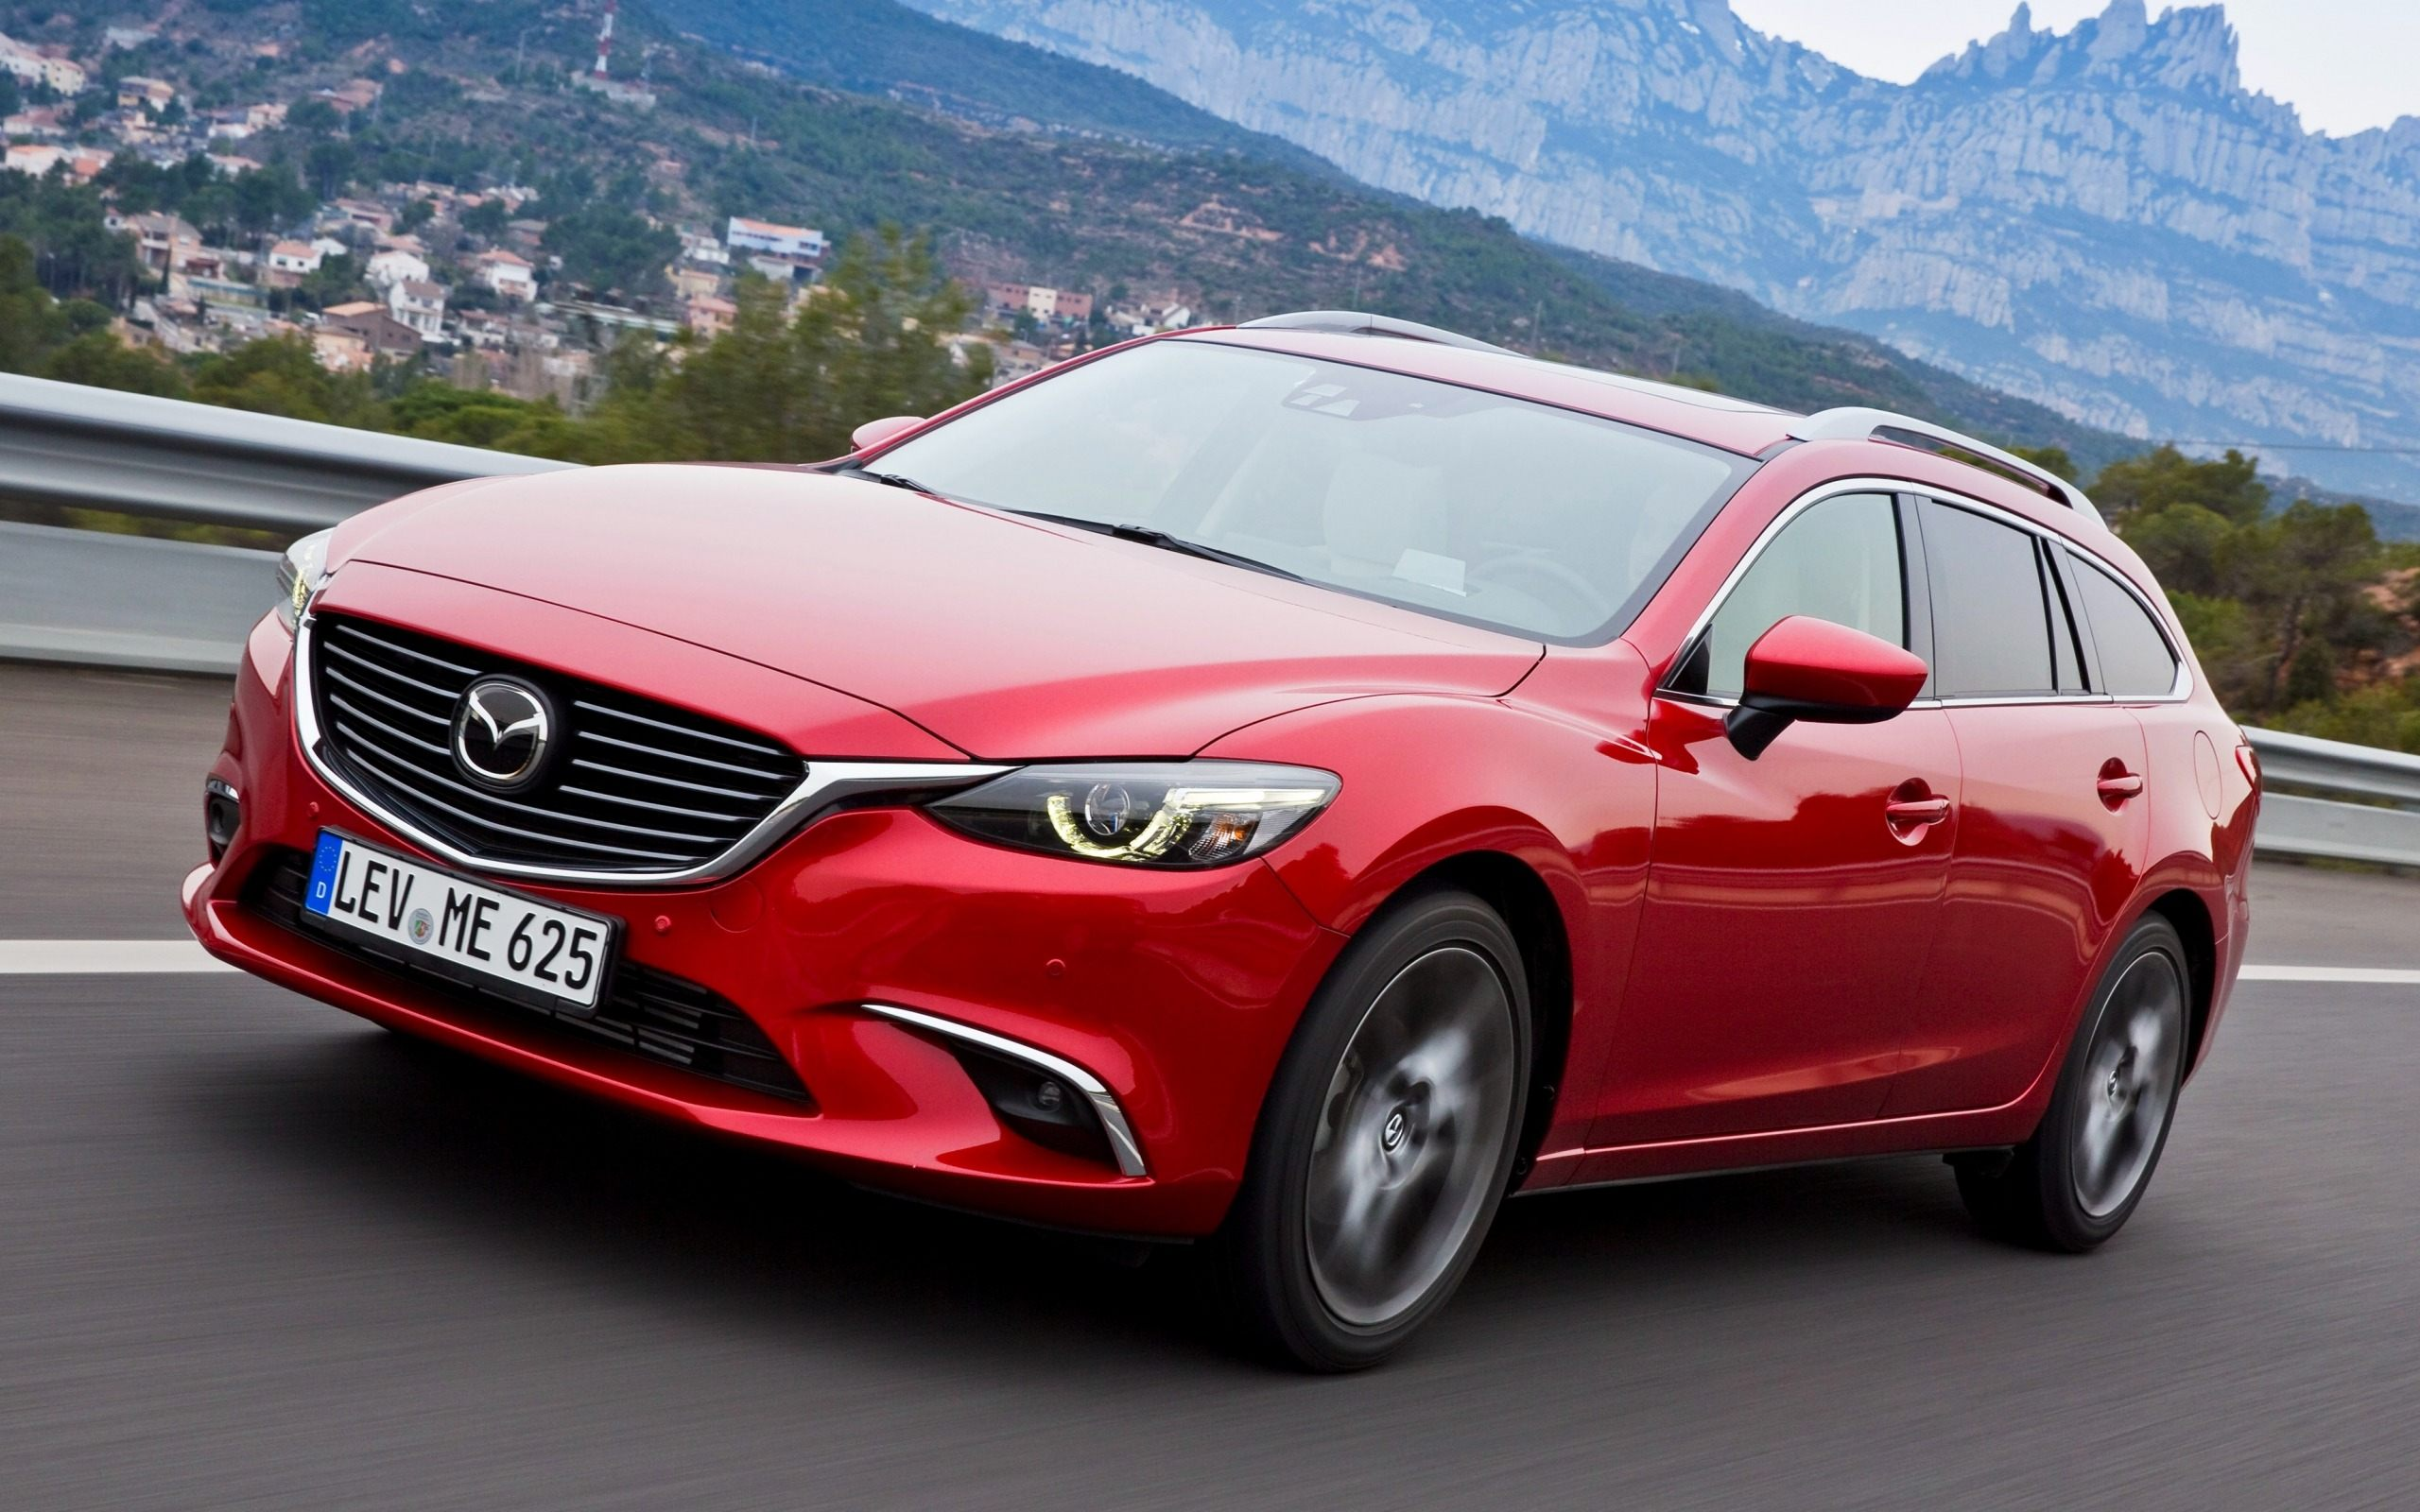 21 Coolest Collection Of Mazda 6 Car Wallpaper For Your Desktop